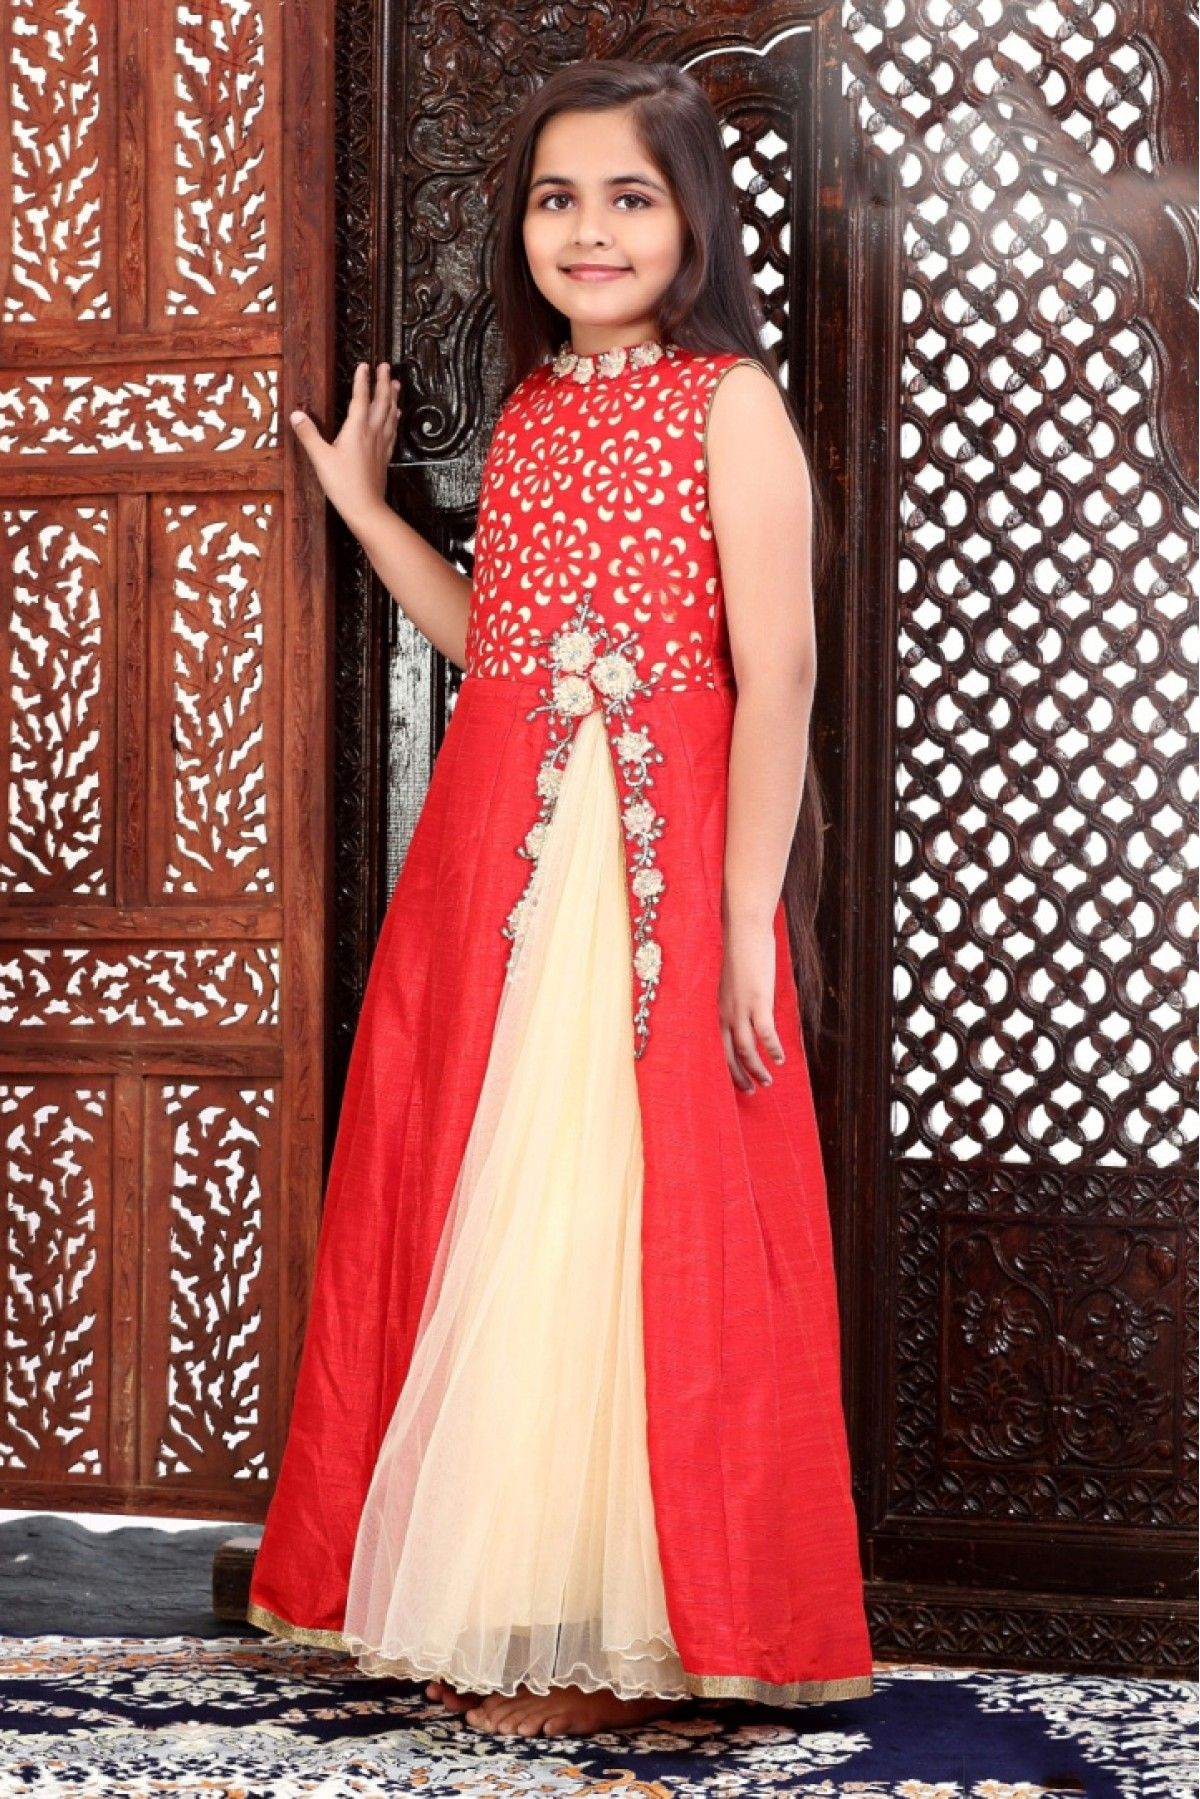 481ece84da6c Buy Net And Satin Party Wear Gown In Red Colour For Girls@ ninecolours.com.  Worldwide Free Shipping Available!